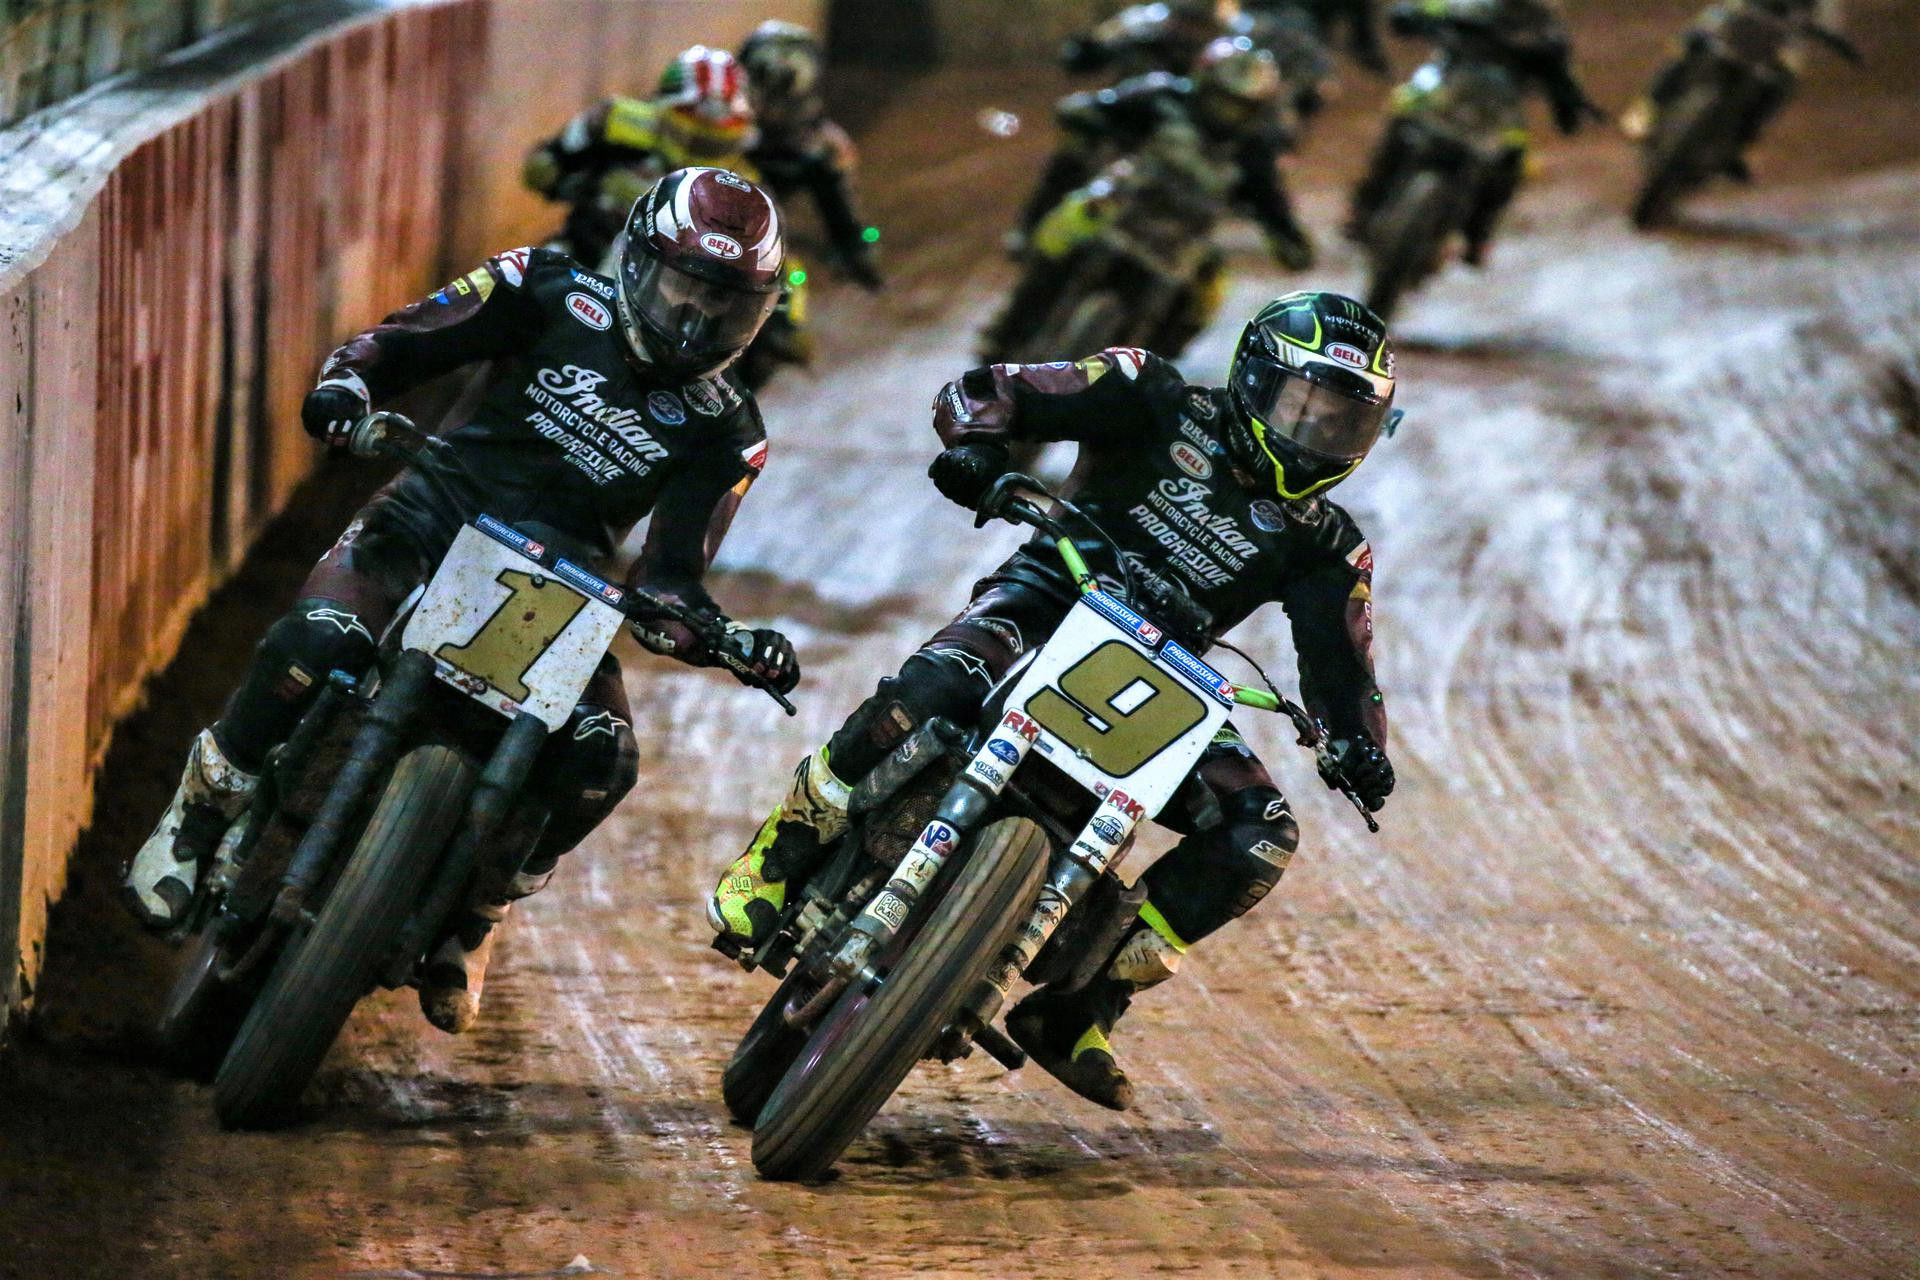 The 2021 AFT Mission SuperTwins Championship will be decided between Briar Bauman (1) and Jared Mees (9) Friday, October 8 at the Charlotte Half-Mile. Photo by Scott Hunter, courtesy AFT.